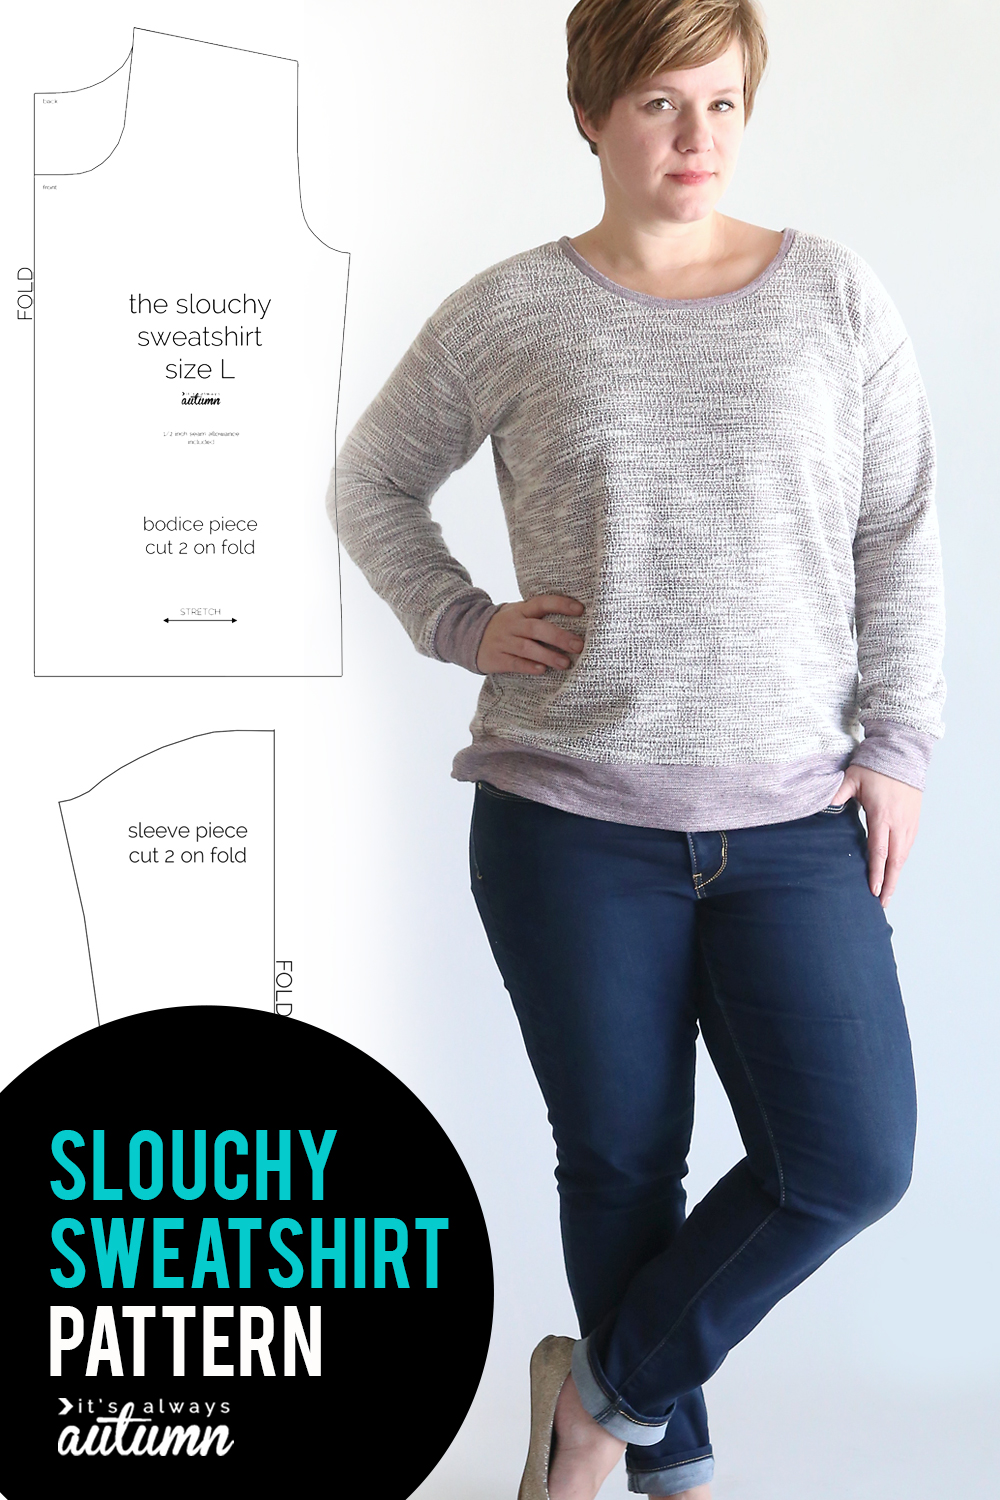 Easy to sew slouchy sweatshirt pattern. Click through for the free pattern and sewing tutorial.